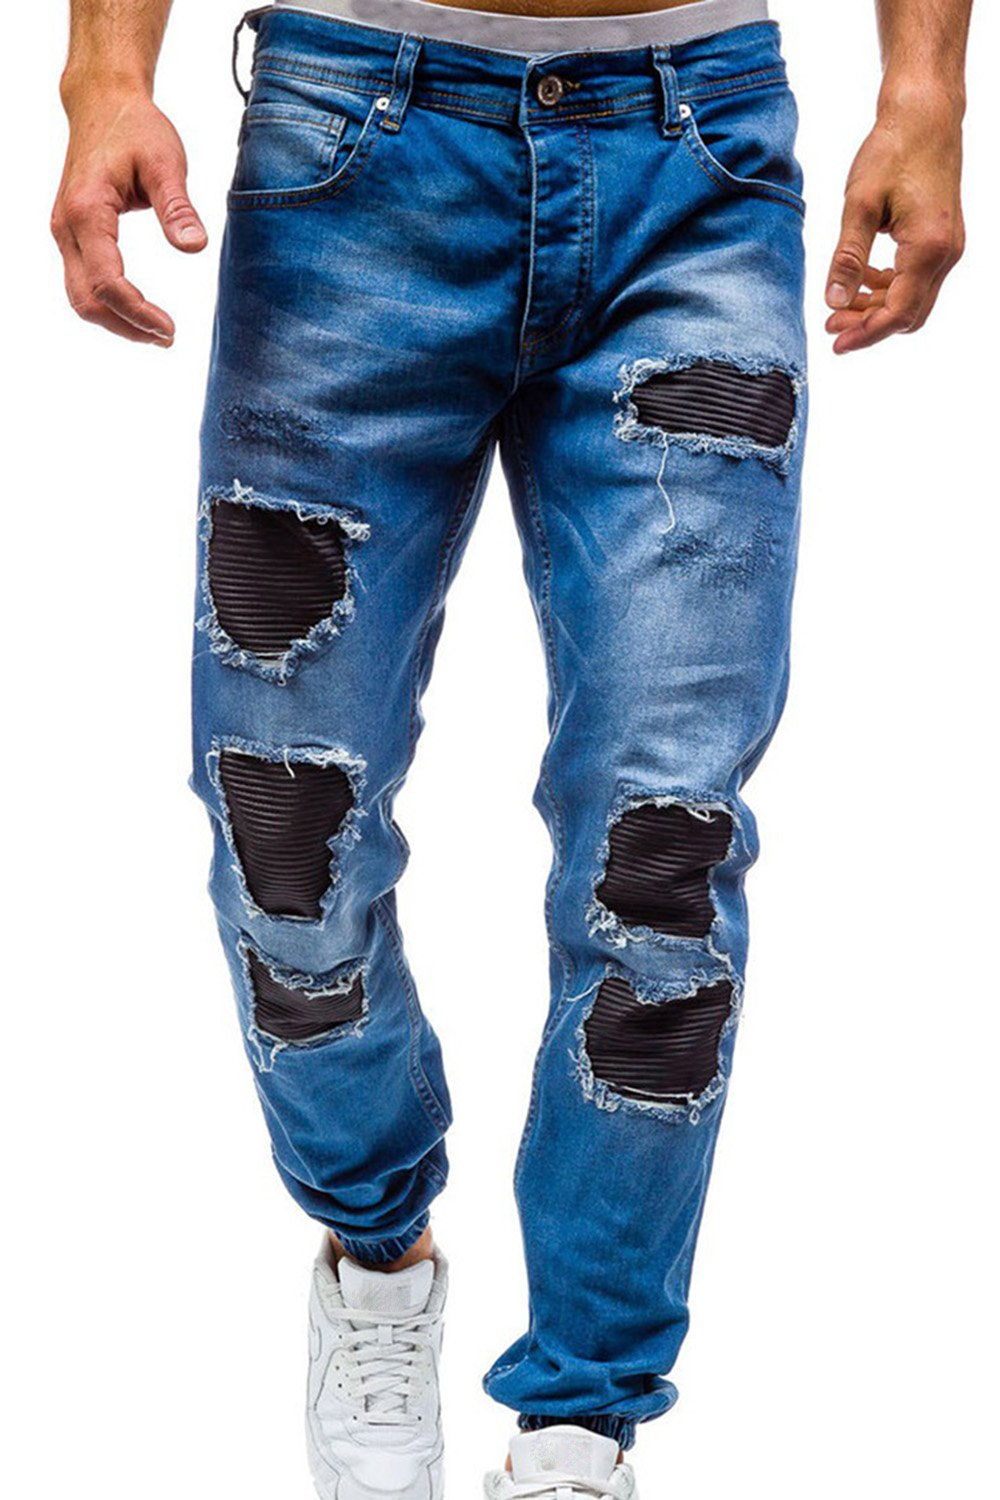 Men's Skinny Slim Fit Straight Ripped Destroyed Distressed Zipper Stretch Knee Patch Denim Pants Jeans (30, Z-Blue)